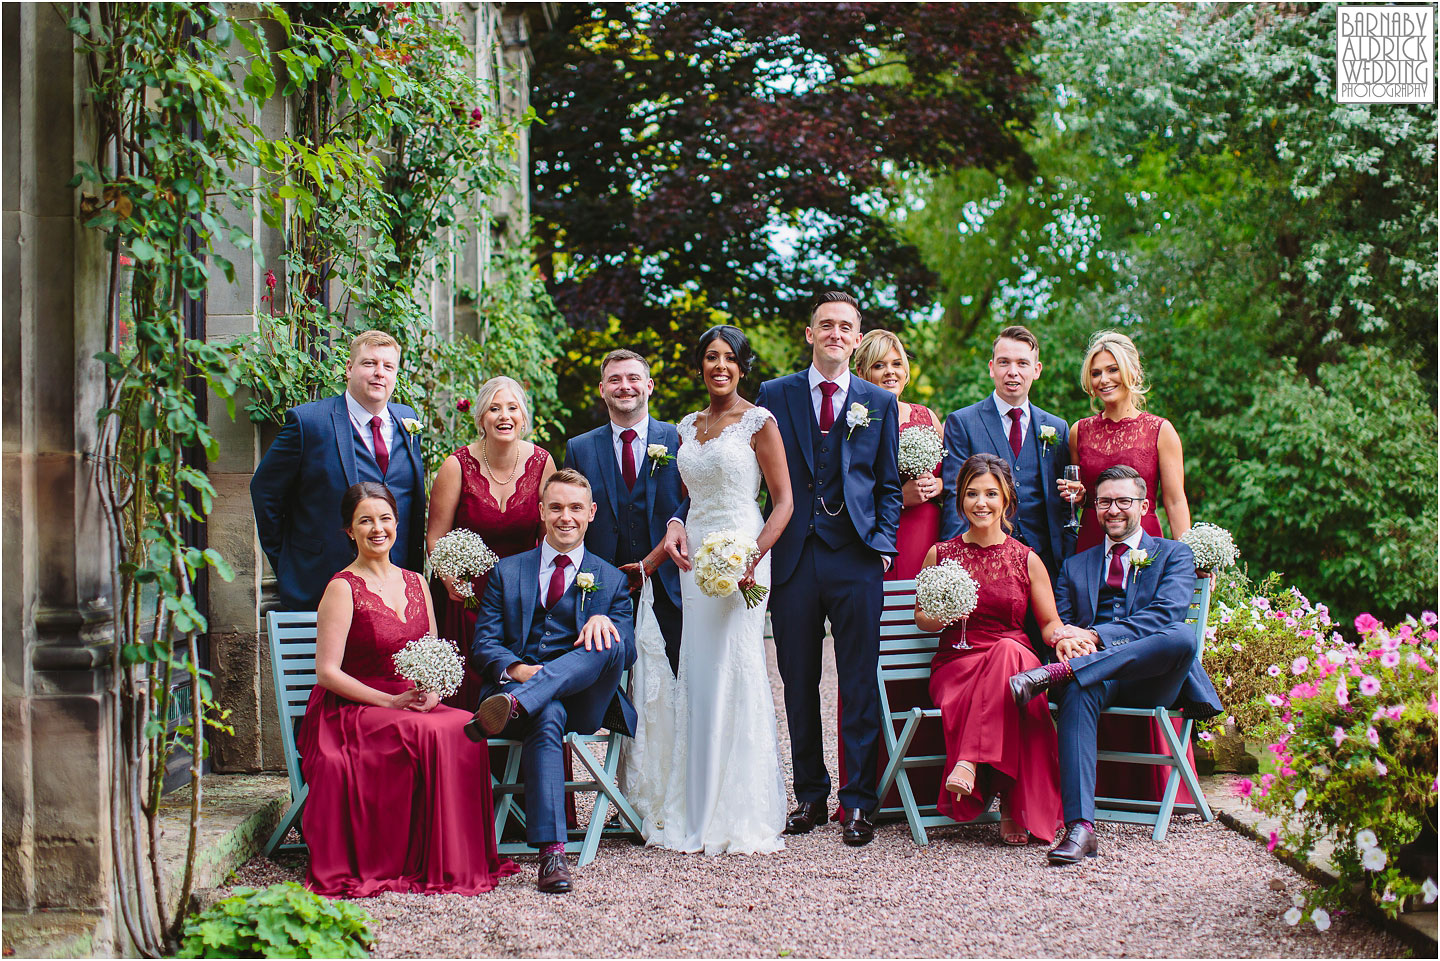 Beautiful Group wedding photo at Sandon Hall in staffordshire, Amazing Yorkshire Wedding Photos, Best Yorkshire Wedding Photos 2018